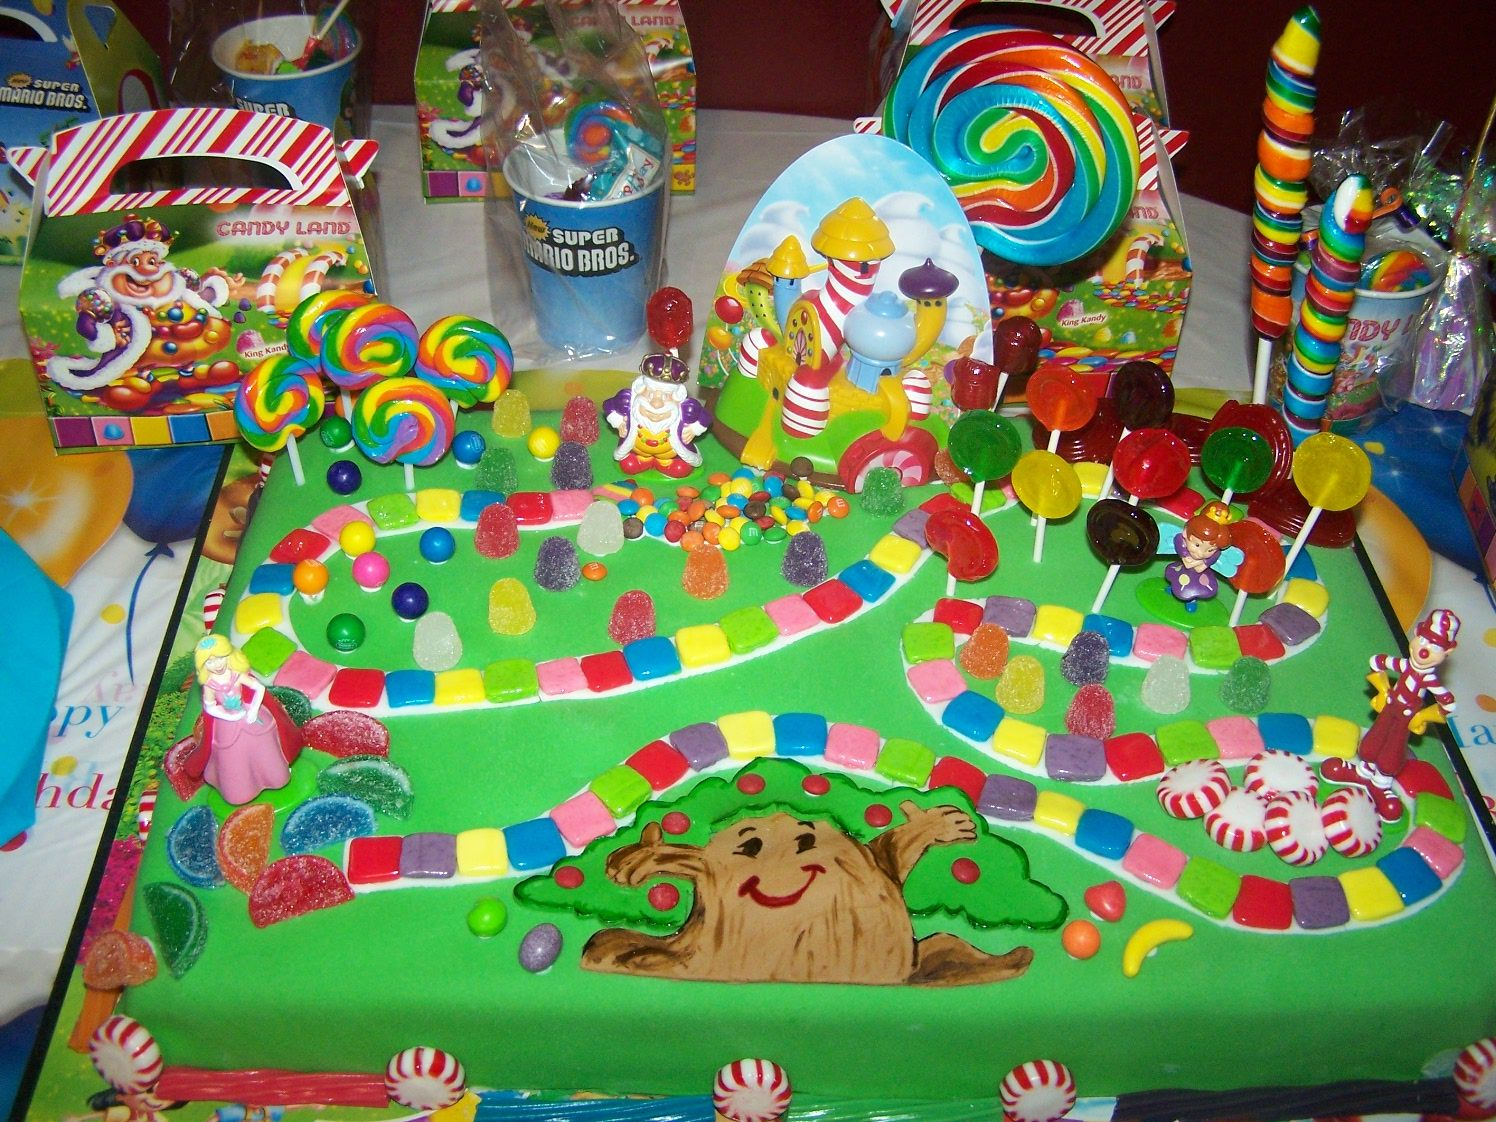 Candyland Candy land birthday party, Candyland birthday